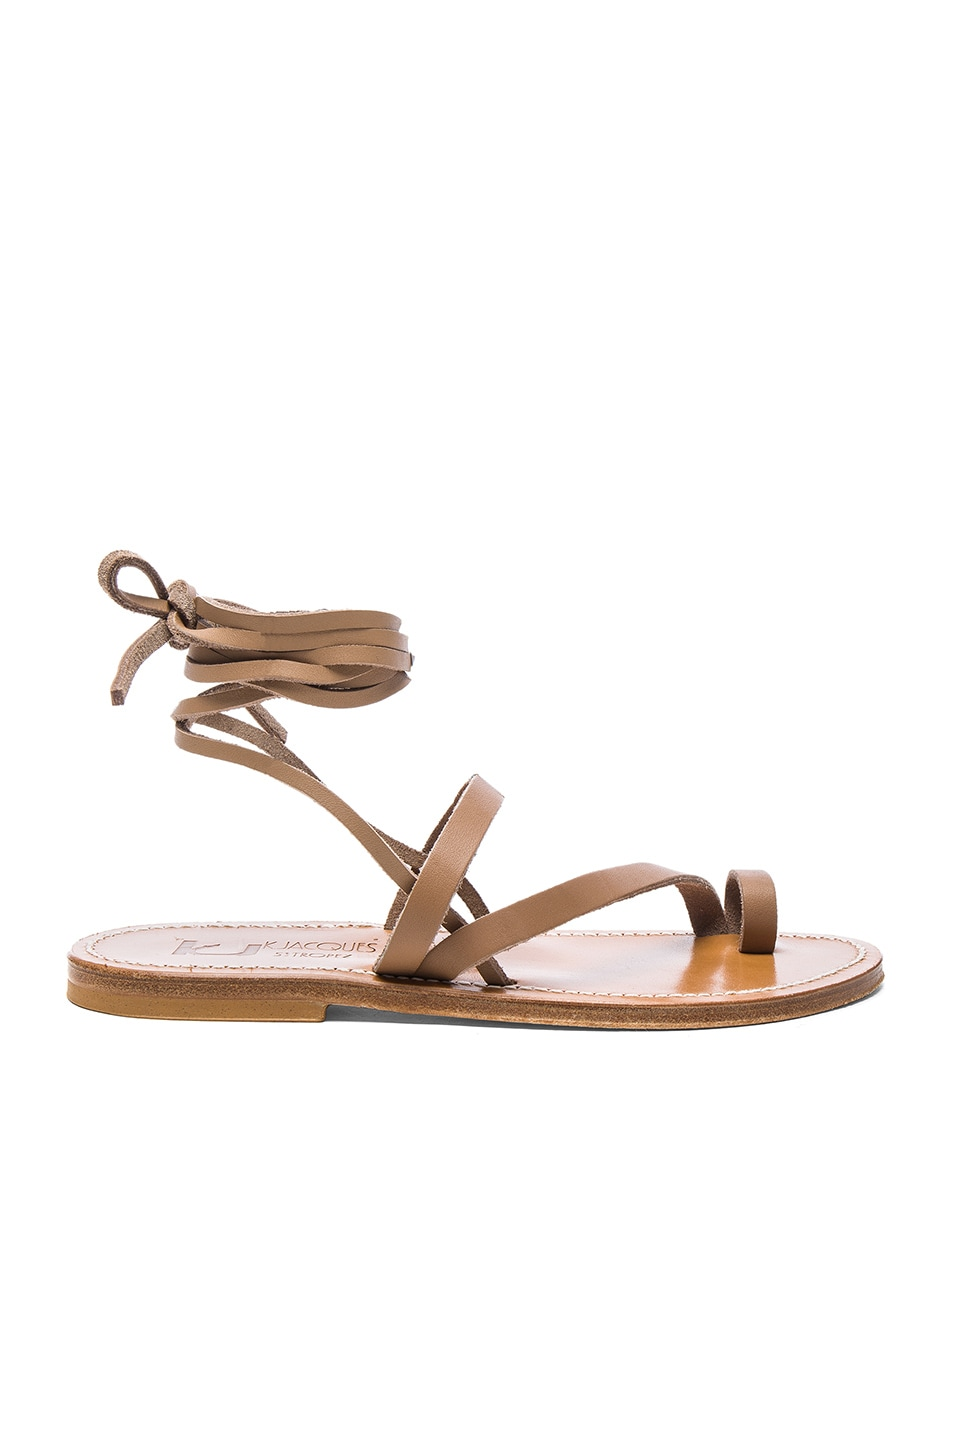 Image 1 of K Jacques Leather Ellada Sandals in Pul Taupe